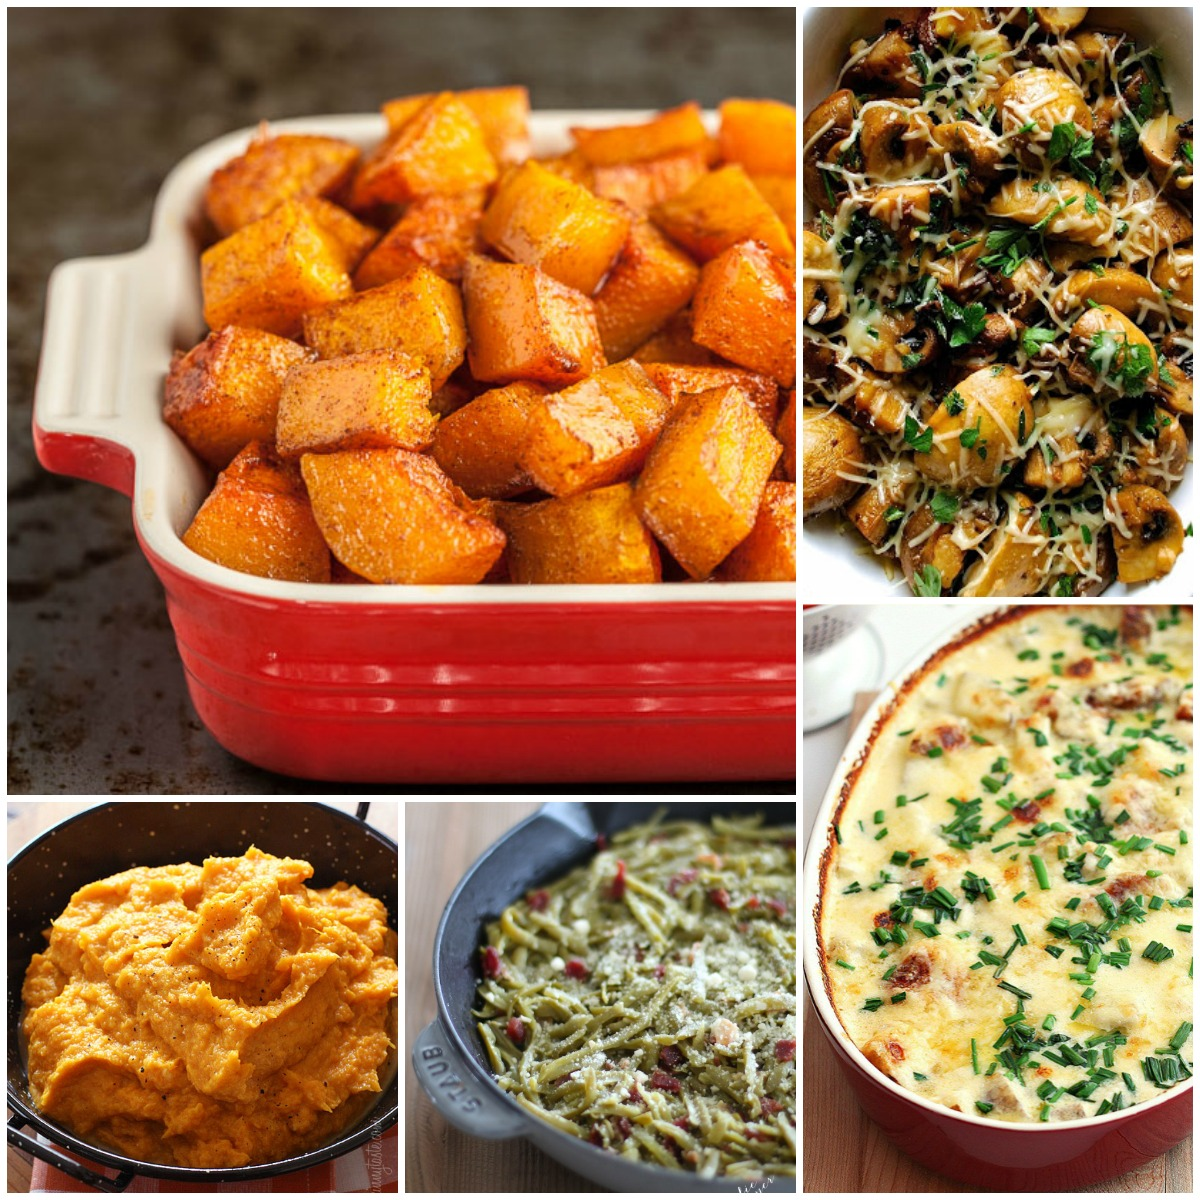 Vegetable Dishes For Christmas.25 Most Pinned Holiday Side Dishes Making Lemonade